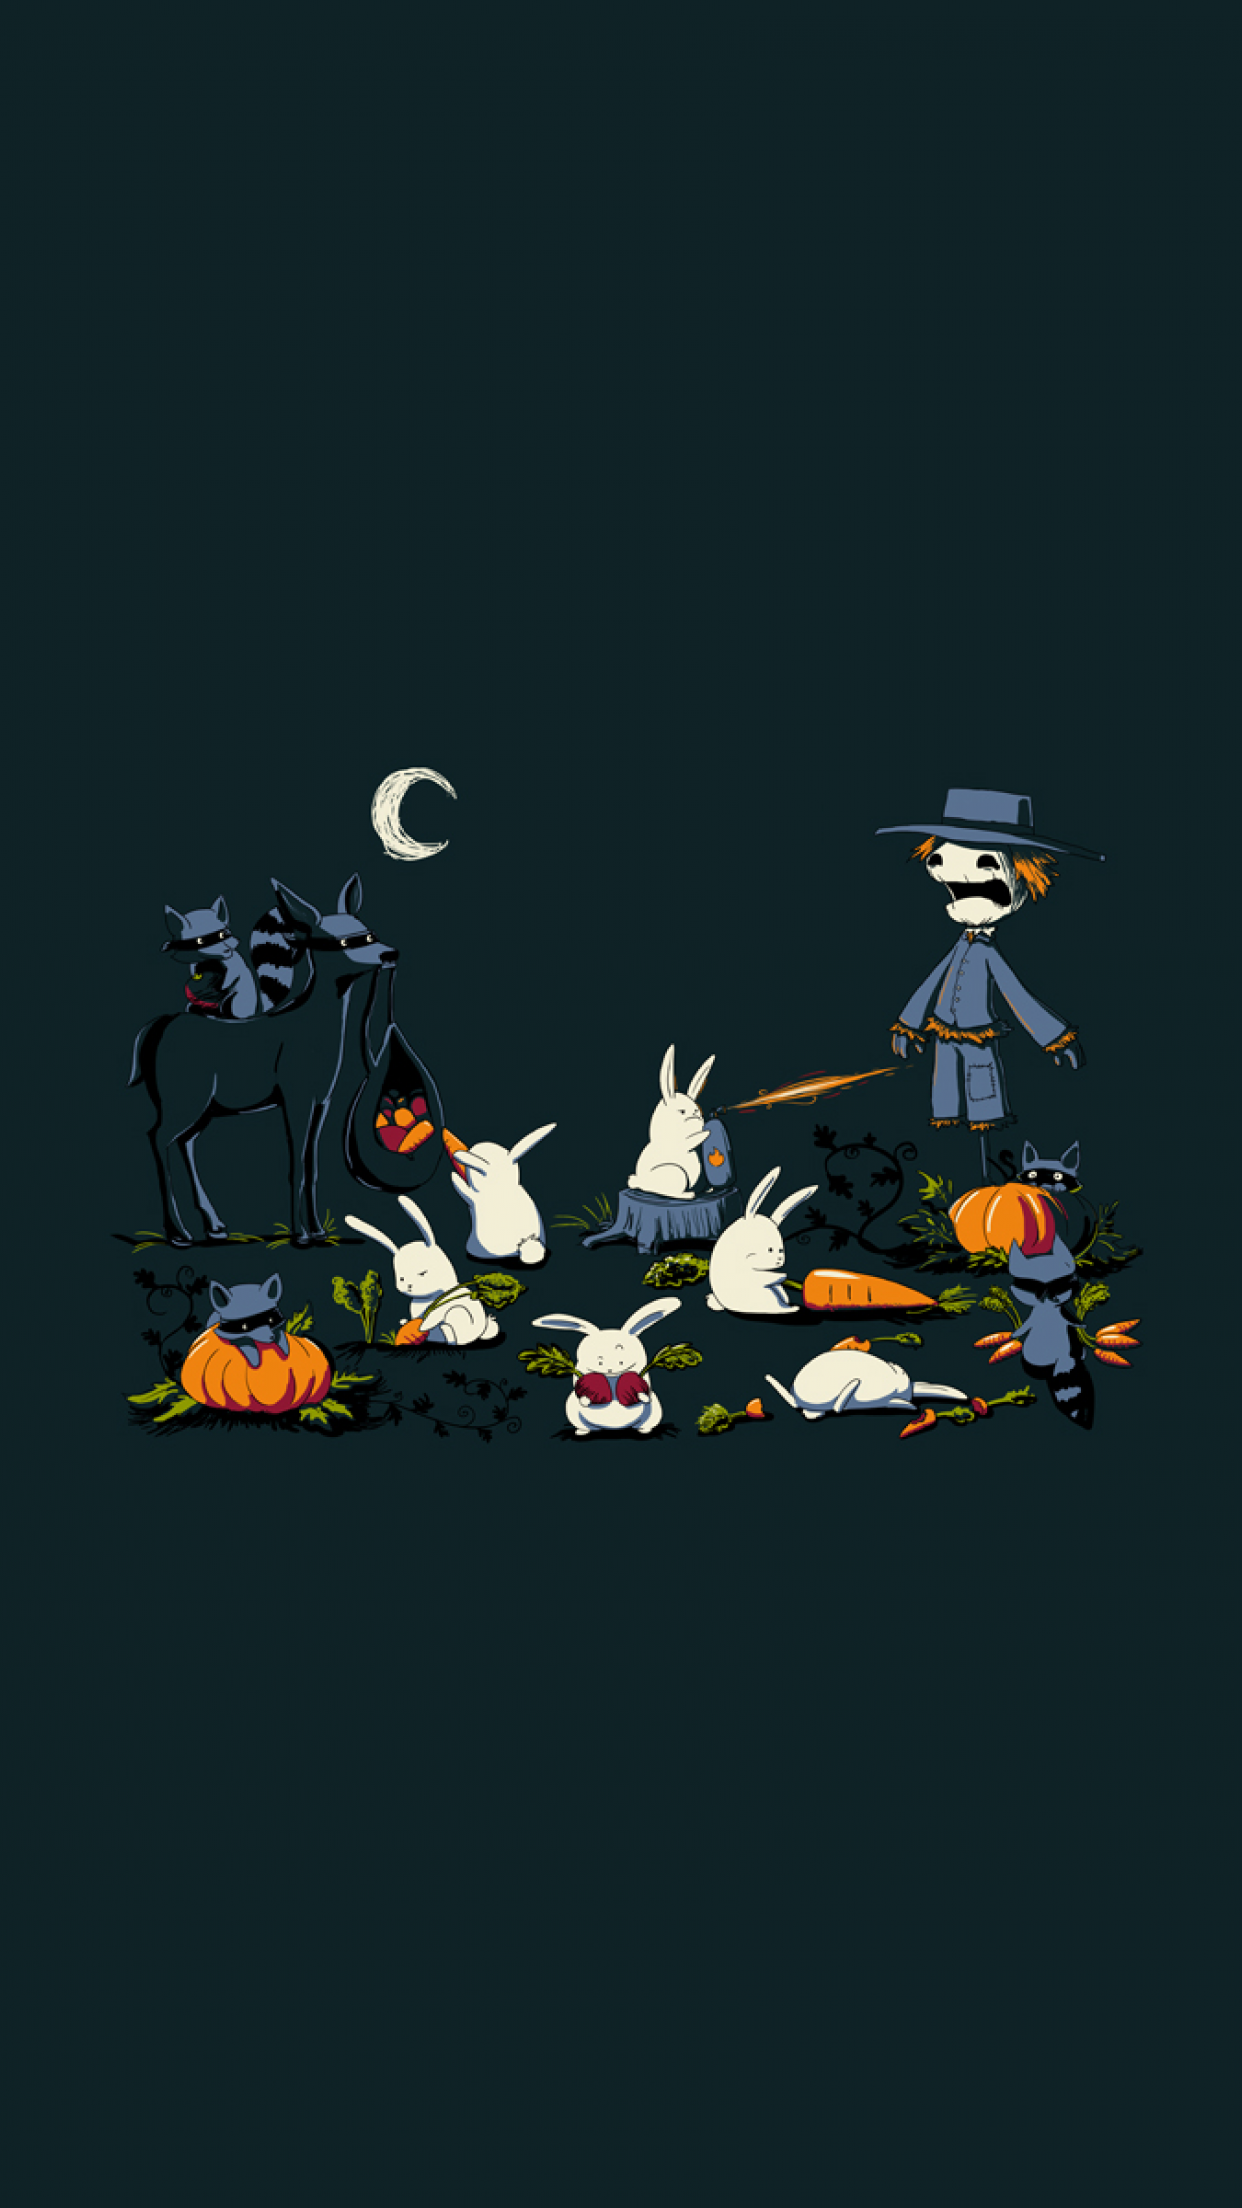 night_rabbits_scarecrows_dark_carrots_simple_halloween